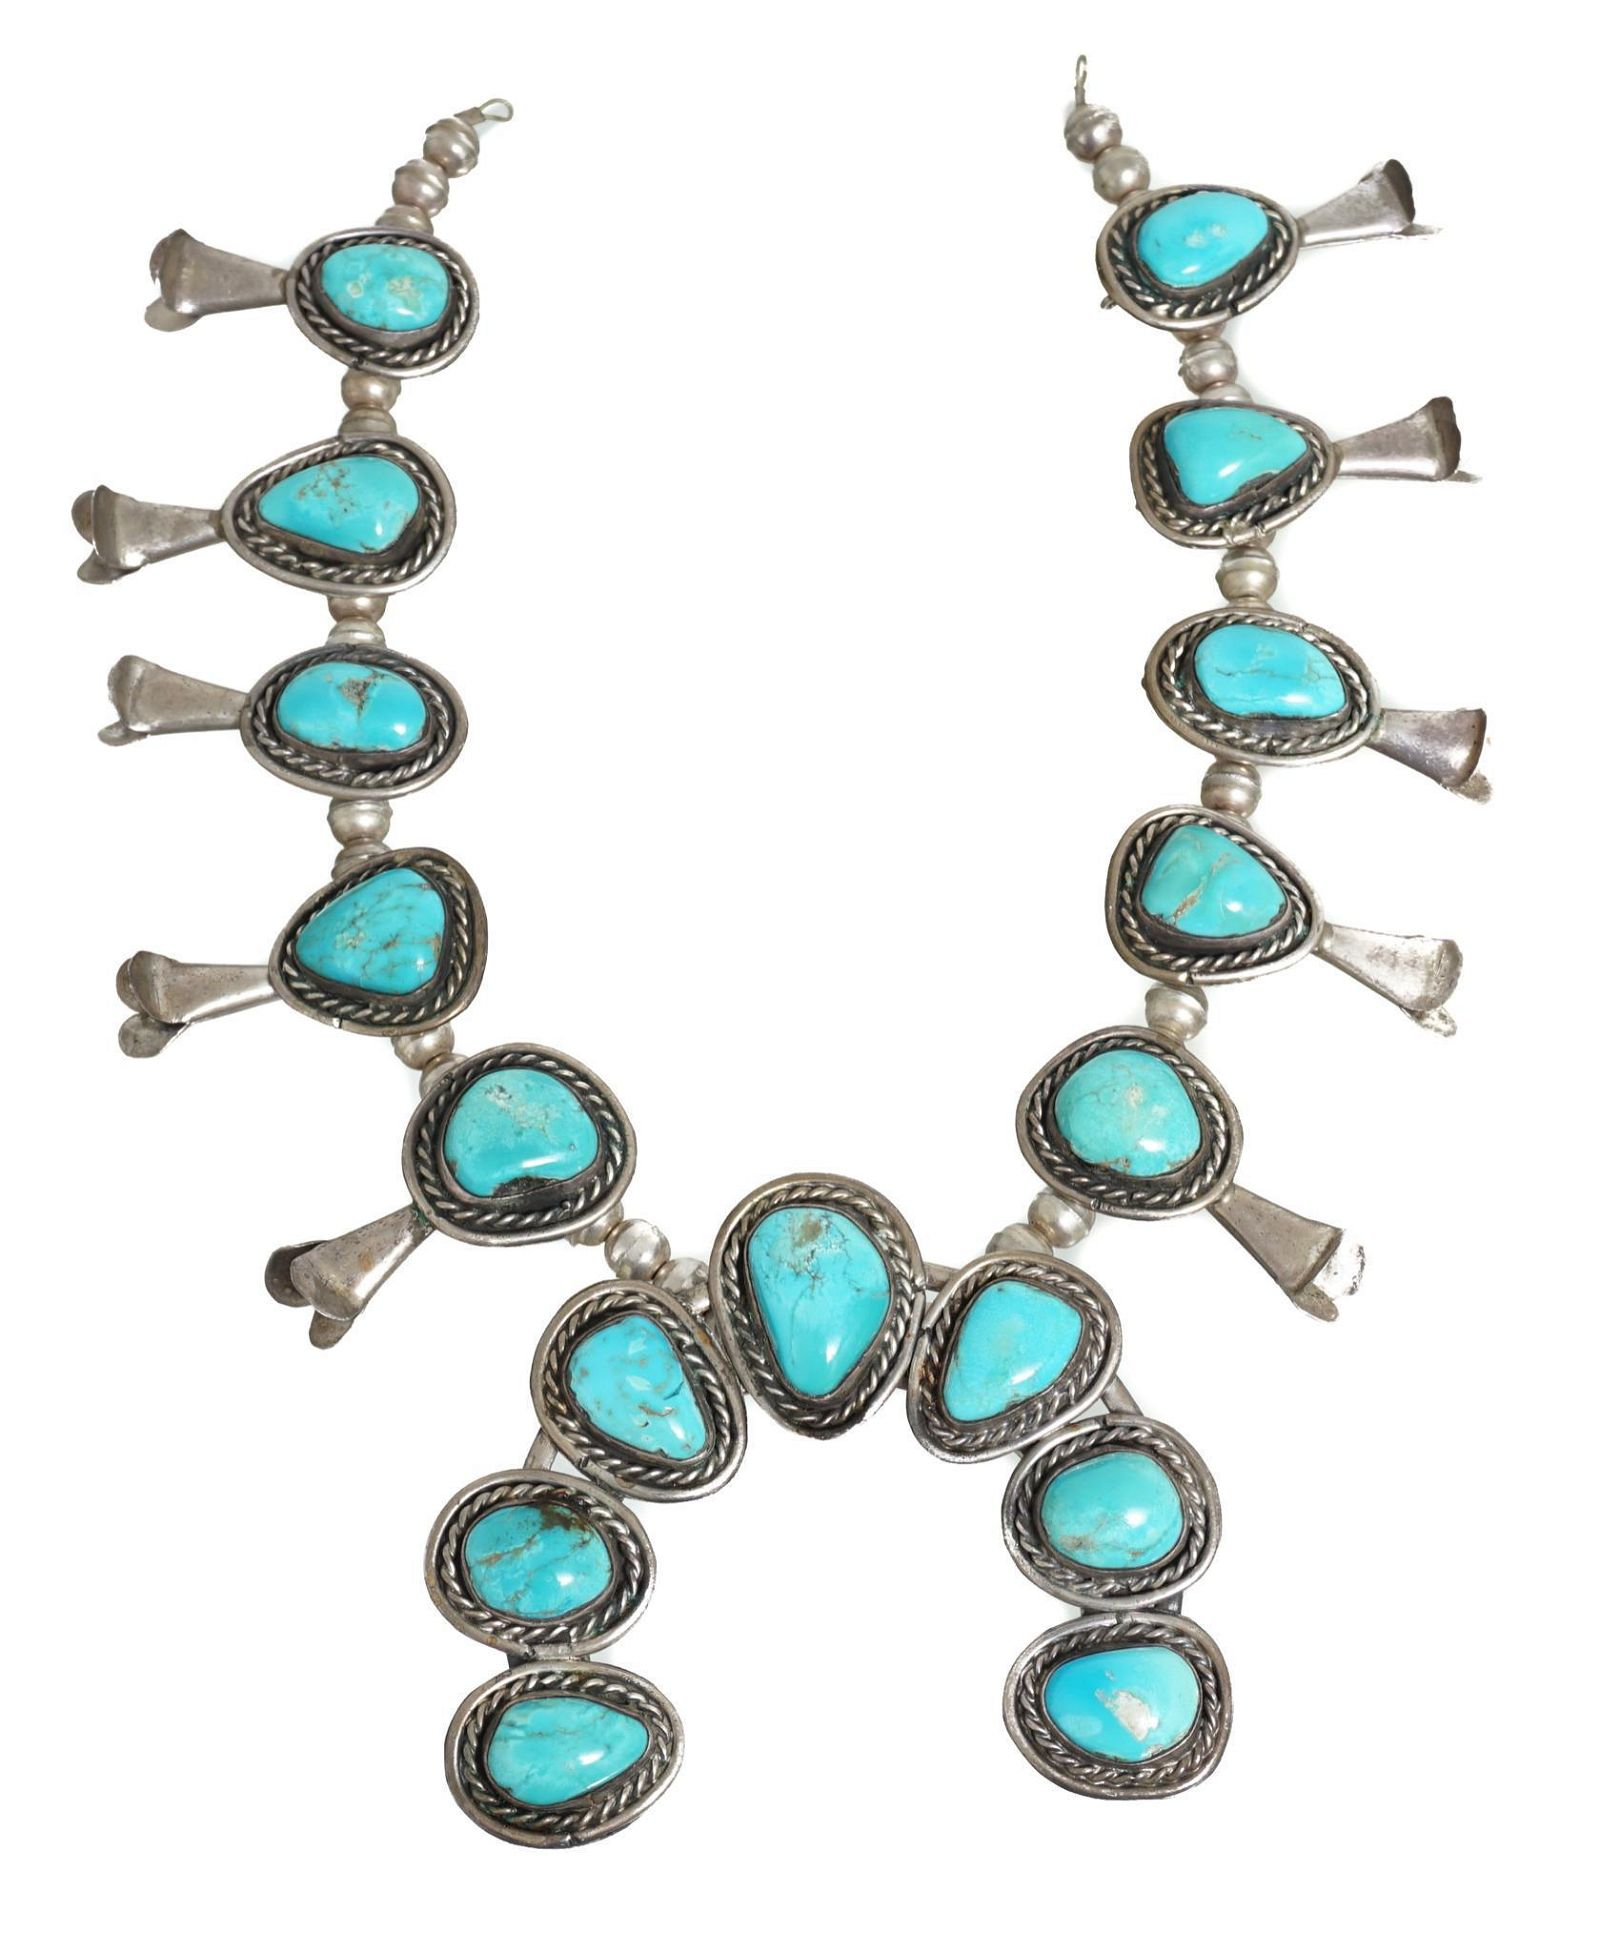 Squash Blossom Necklace w/ Sterling Silver & Turquoise